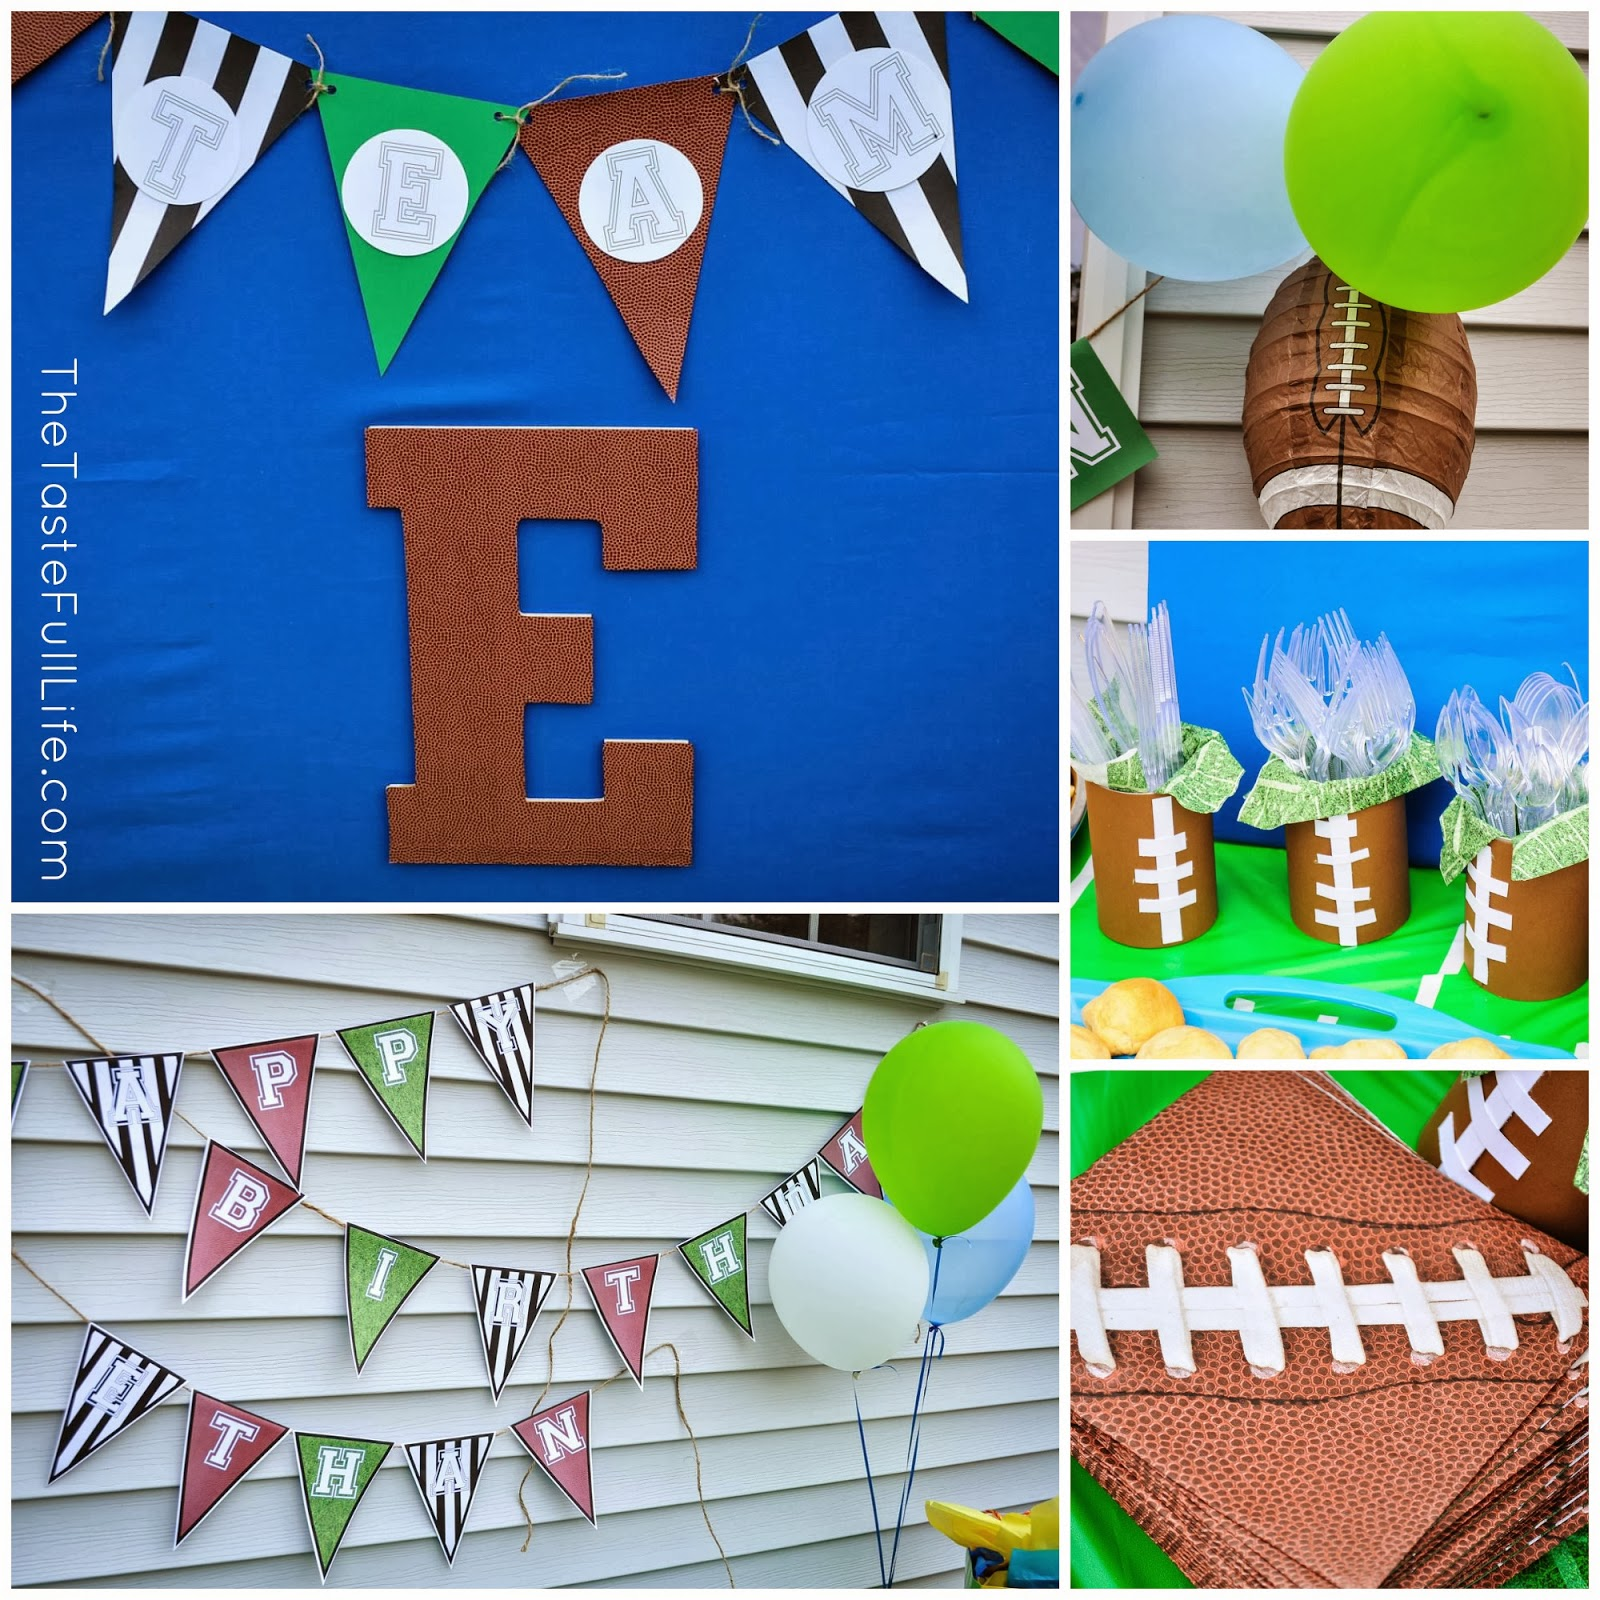 Super Bowl Party Decorations Uk: Team E: Football Themed Birthday Party.